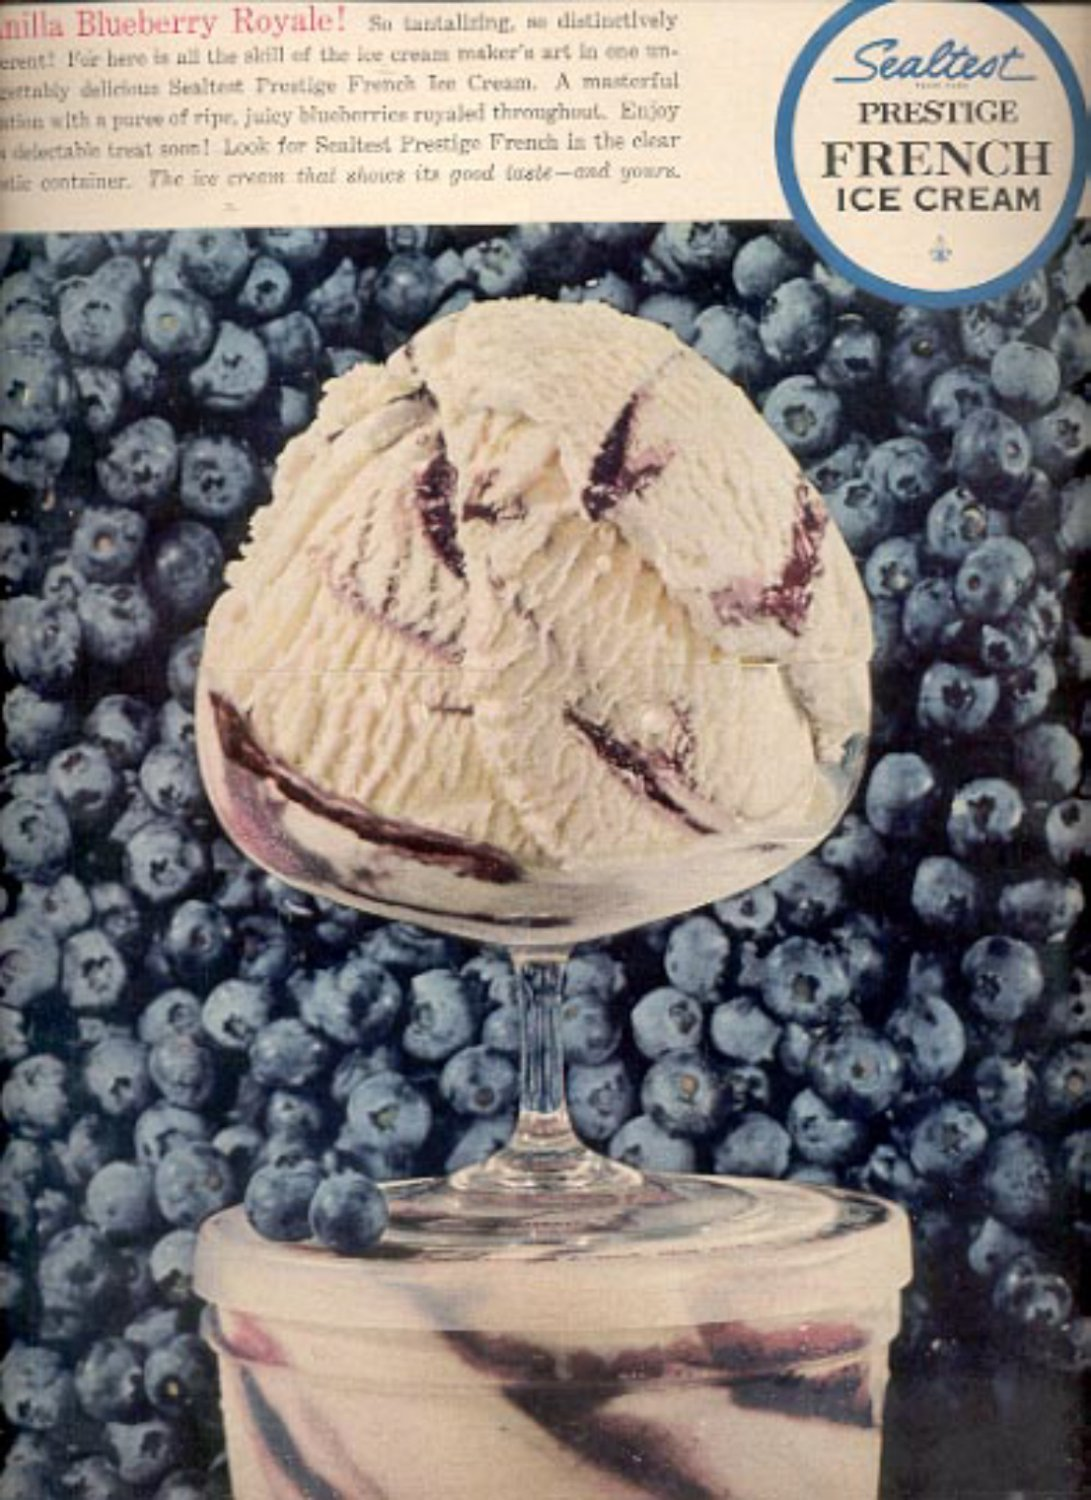 1964     Sealtest Prestige French Ice Cream ad (# 4850)